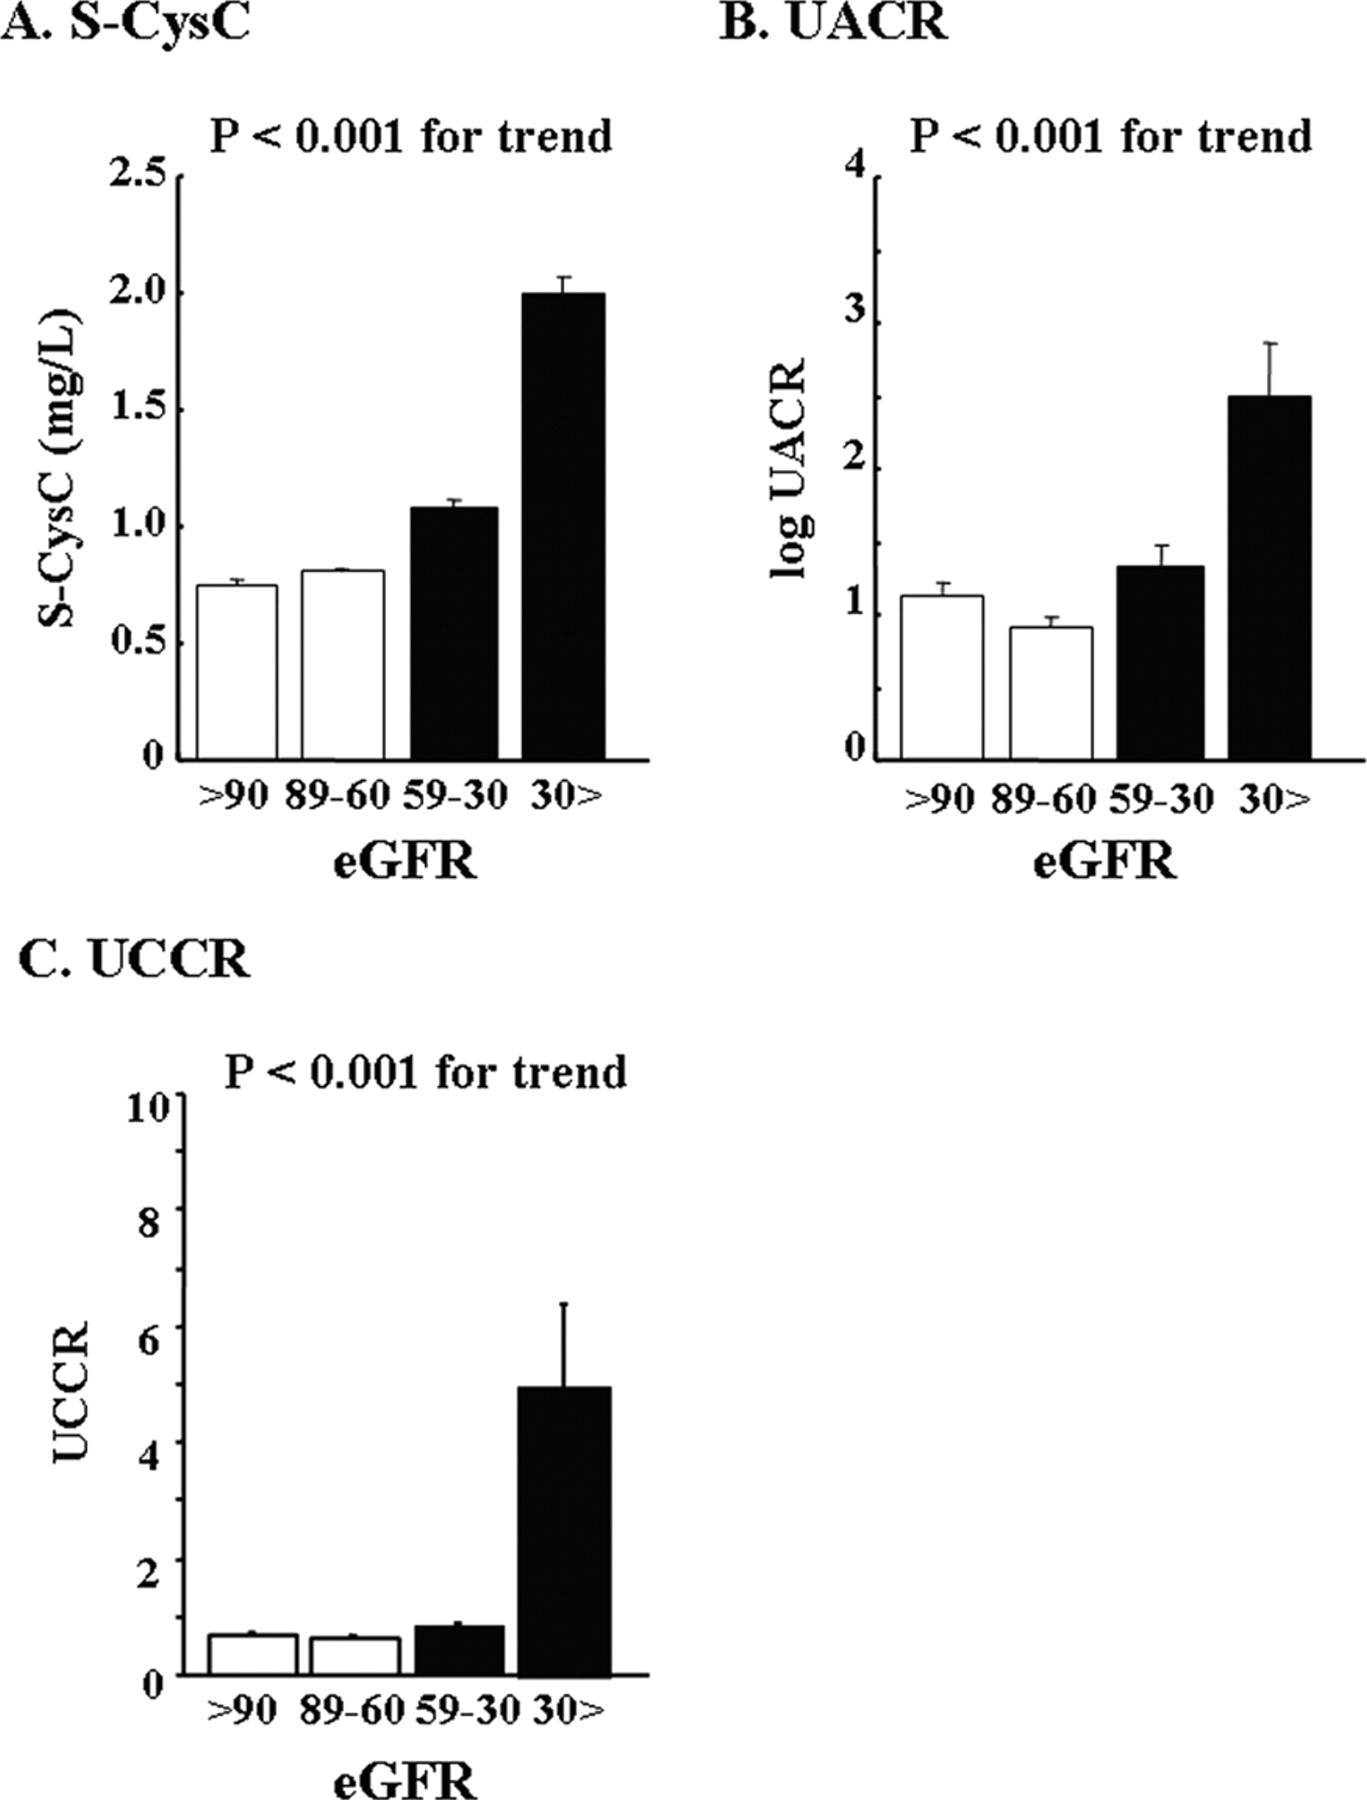 Urinary Cystatin C as a Potential Risk Marker for